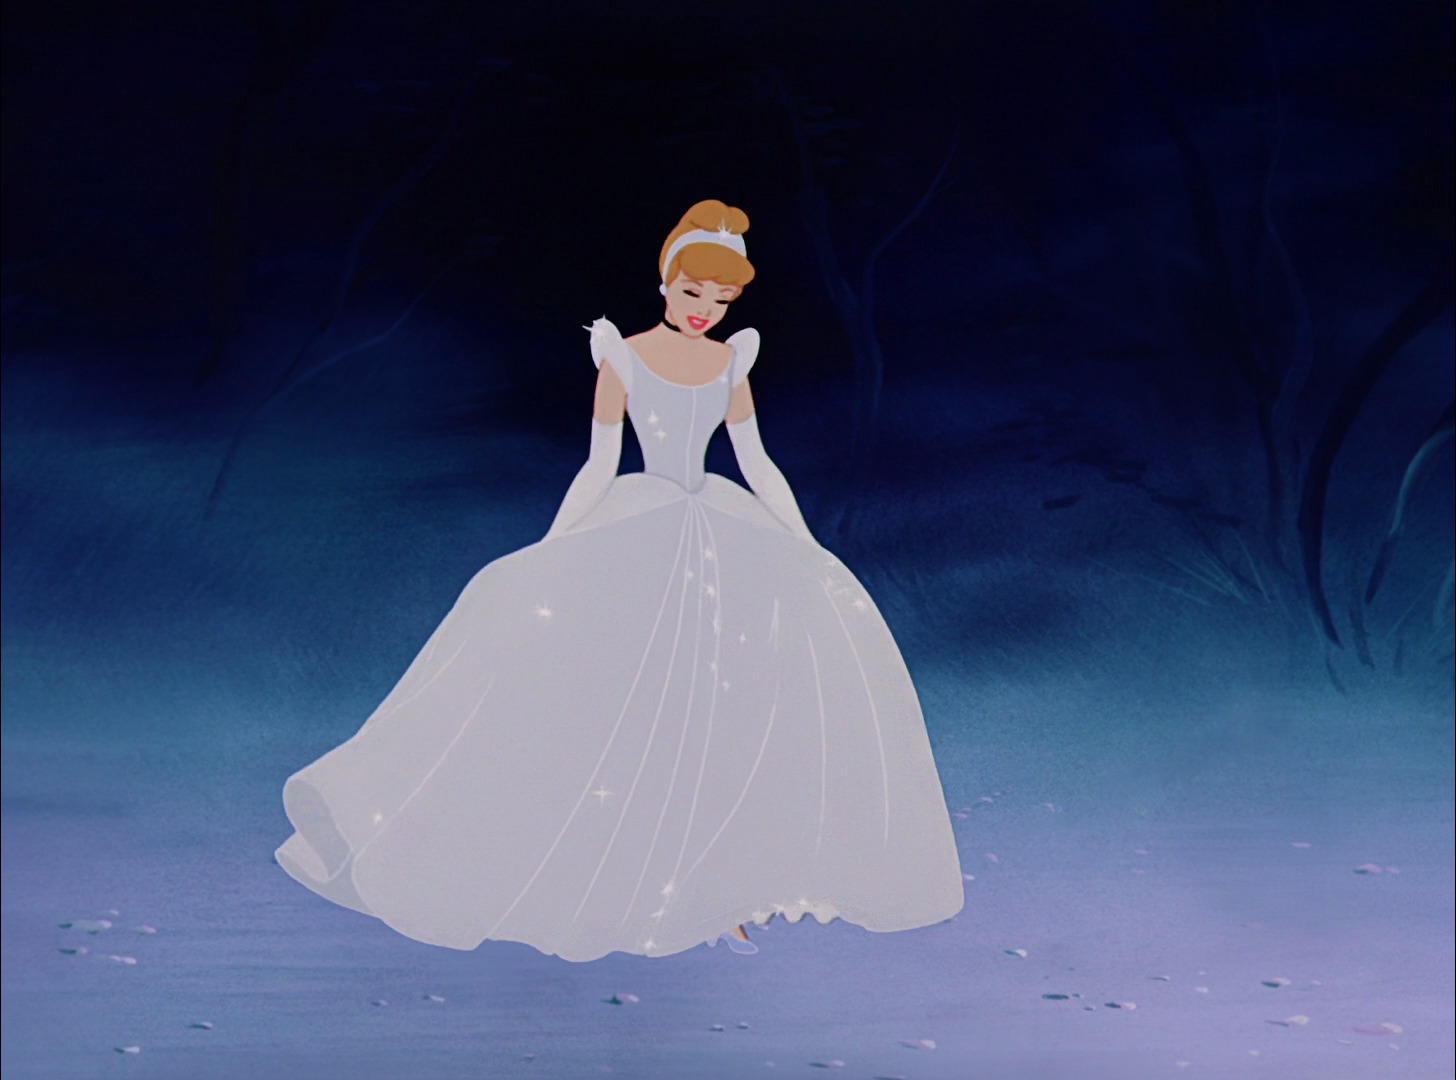 Disney Princess Historical Costume Influences Cinderella